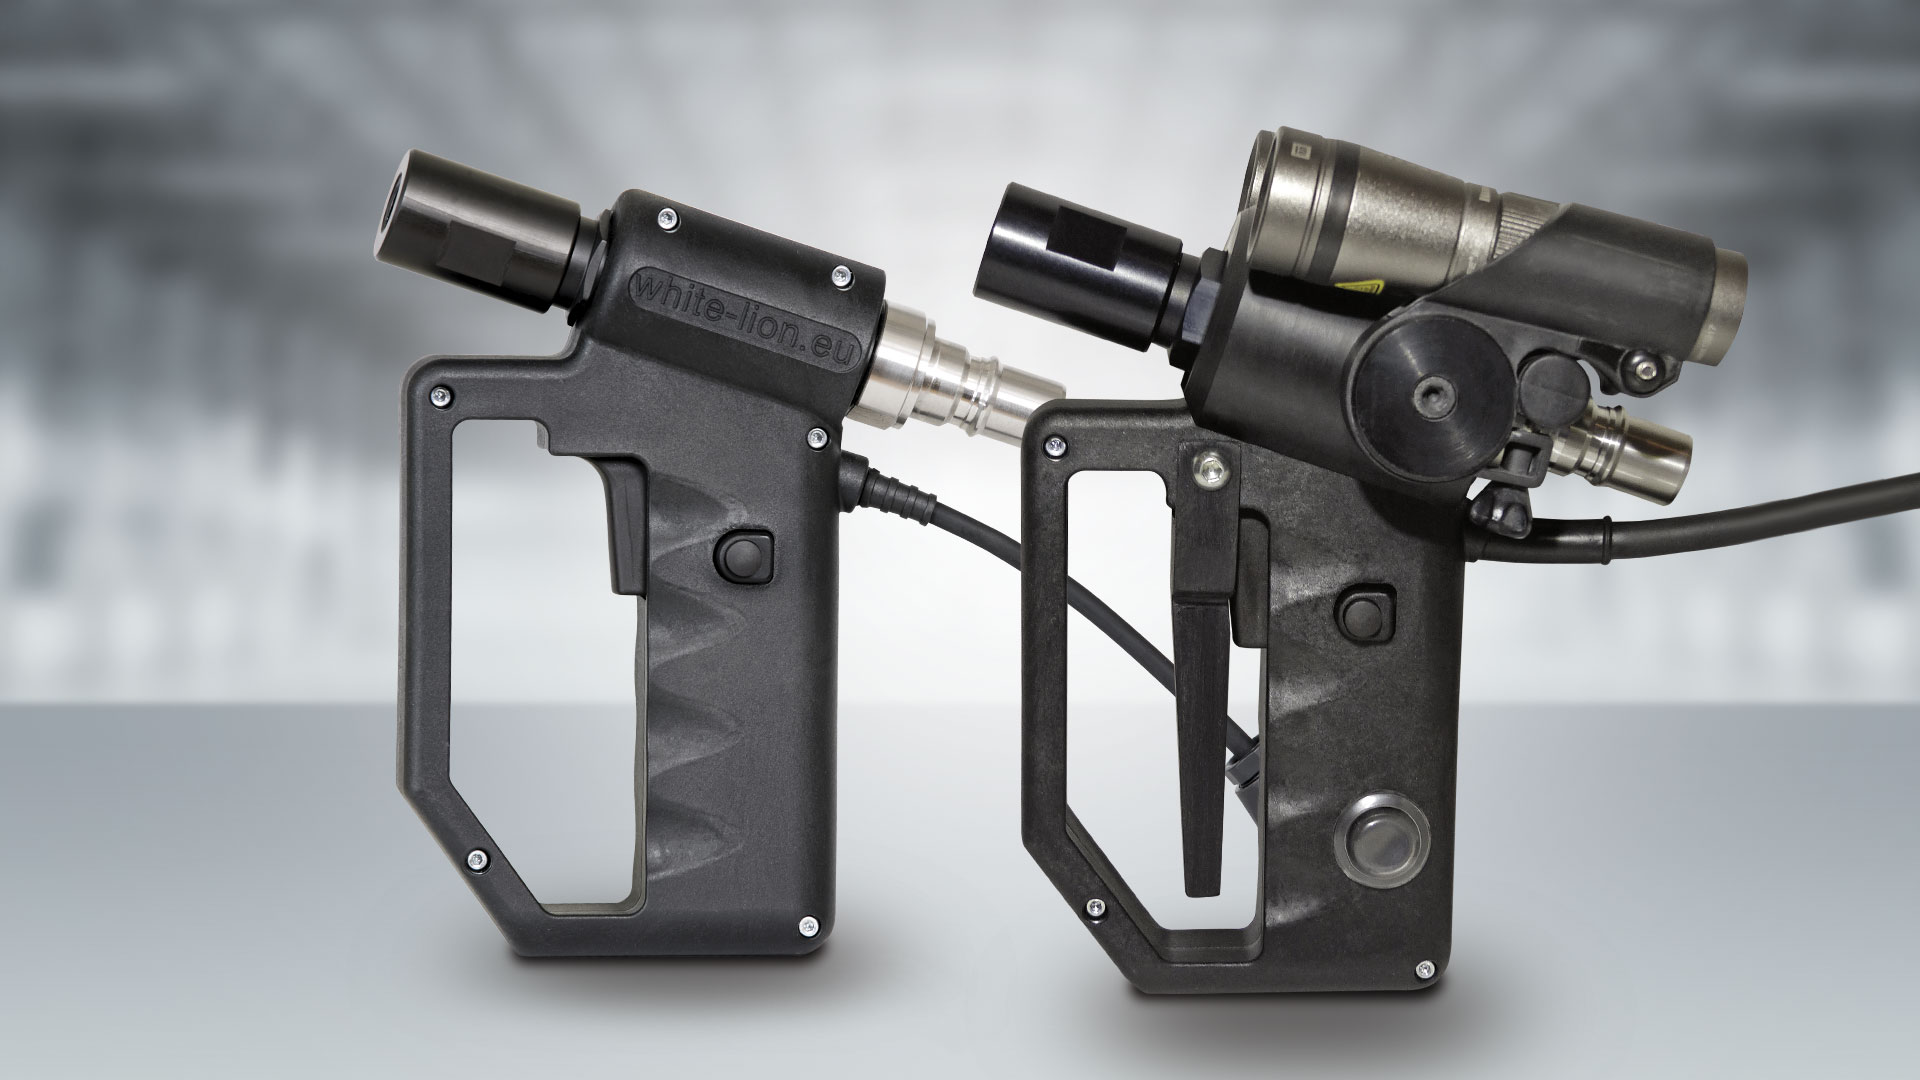 The White Lion Multi Ice Gun (left) and the White Lion Premium Ice Gun with LUMI package (right)